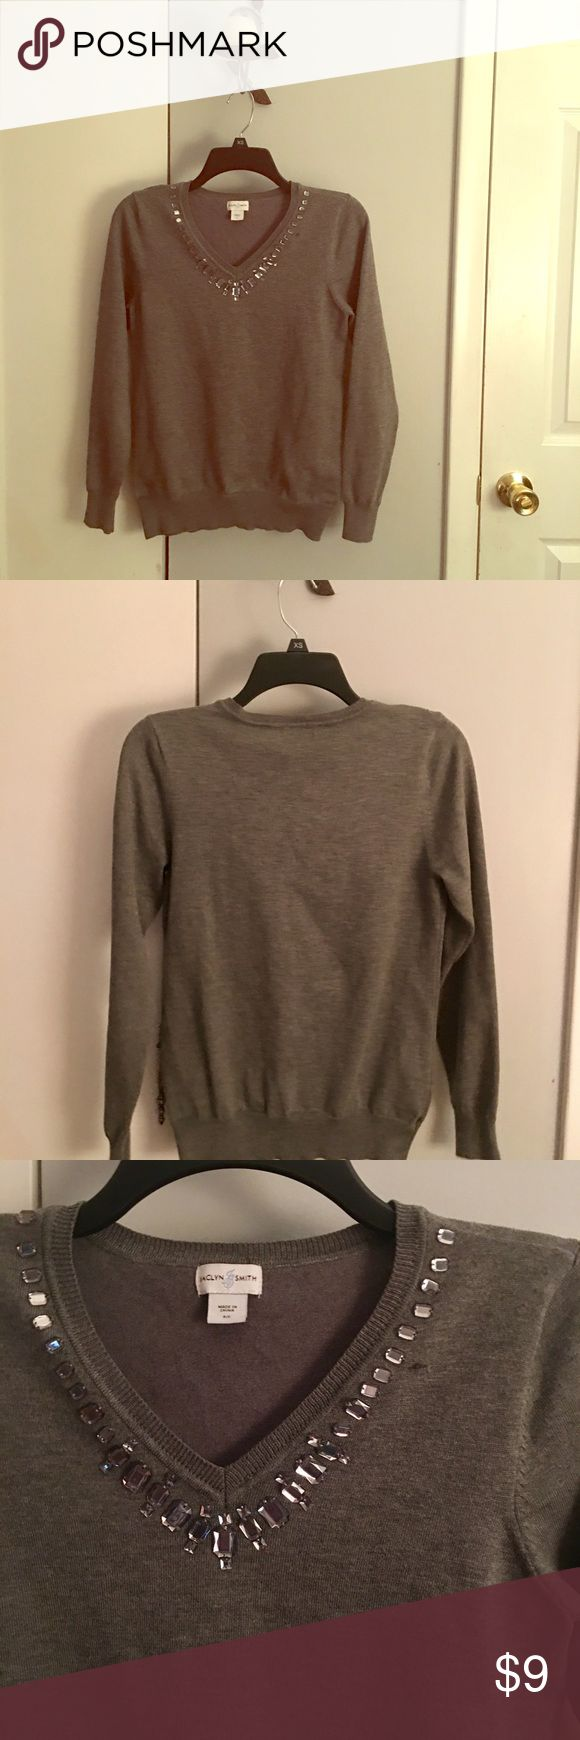 Gray EUC v neck sweater with jewel embellishments Size Small - Jaclyn Smith / worn only once for a couple hours - in EXCELLENT condition . V neck with jewels embellished around neckline ( all intact - none loose)  Perfect for upcoming holidays too⭐️as always bundle three or more listings and save an automatic 20% off total at least✨🌸 Jackyn Smith Sweaters V-Necks